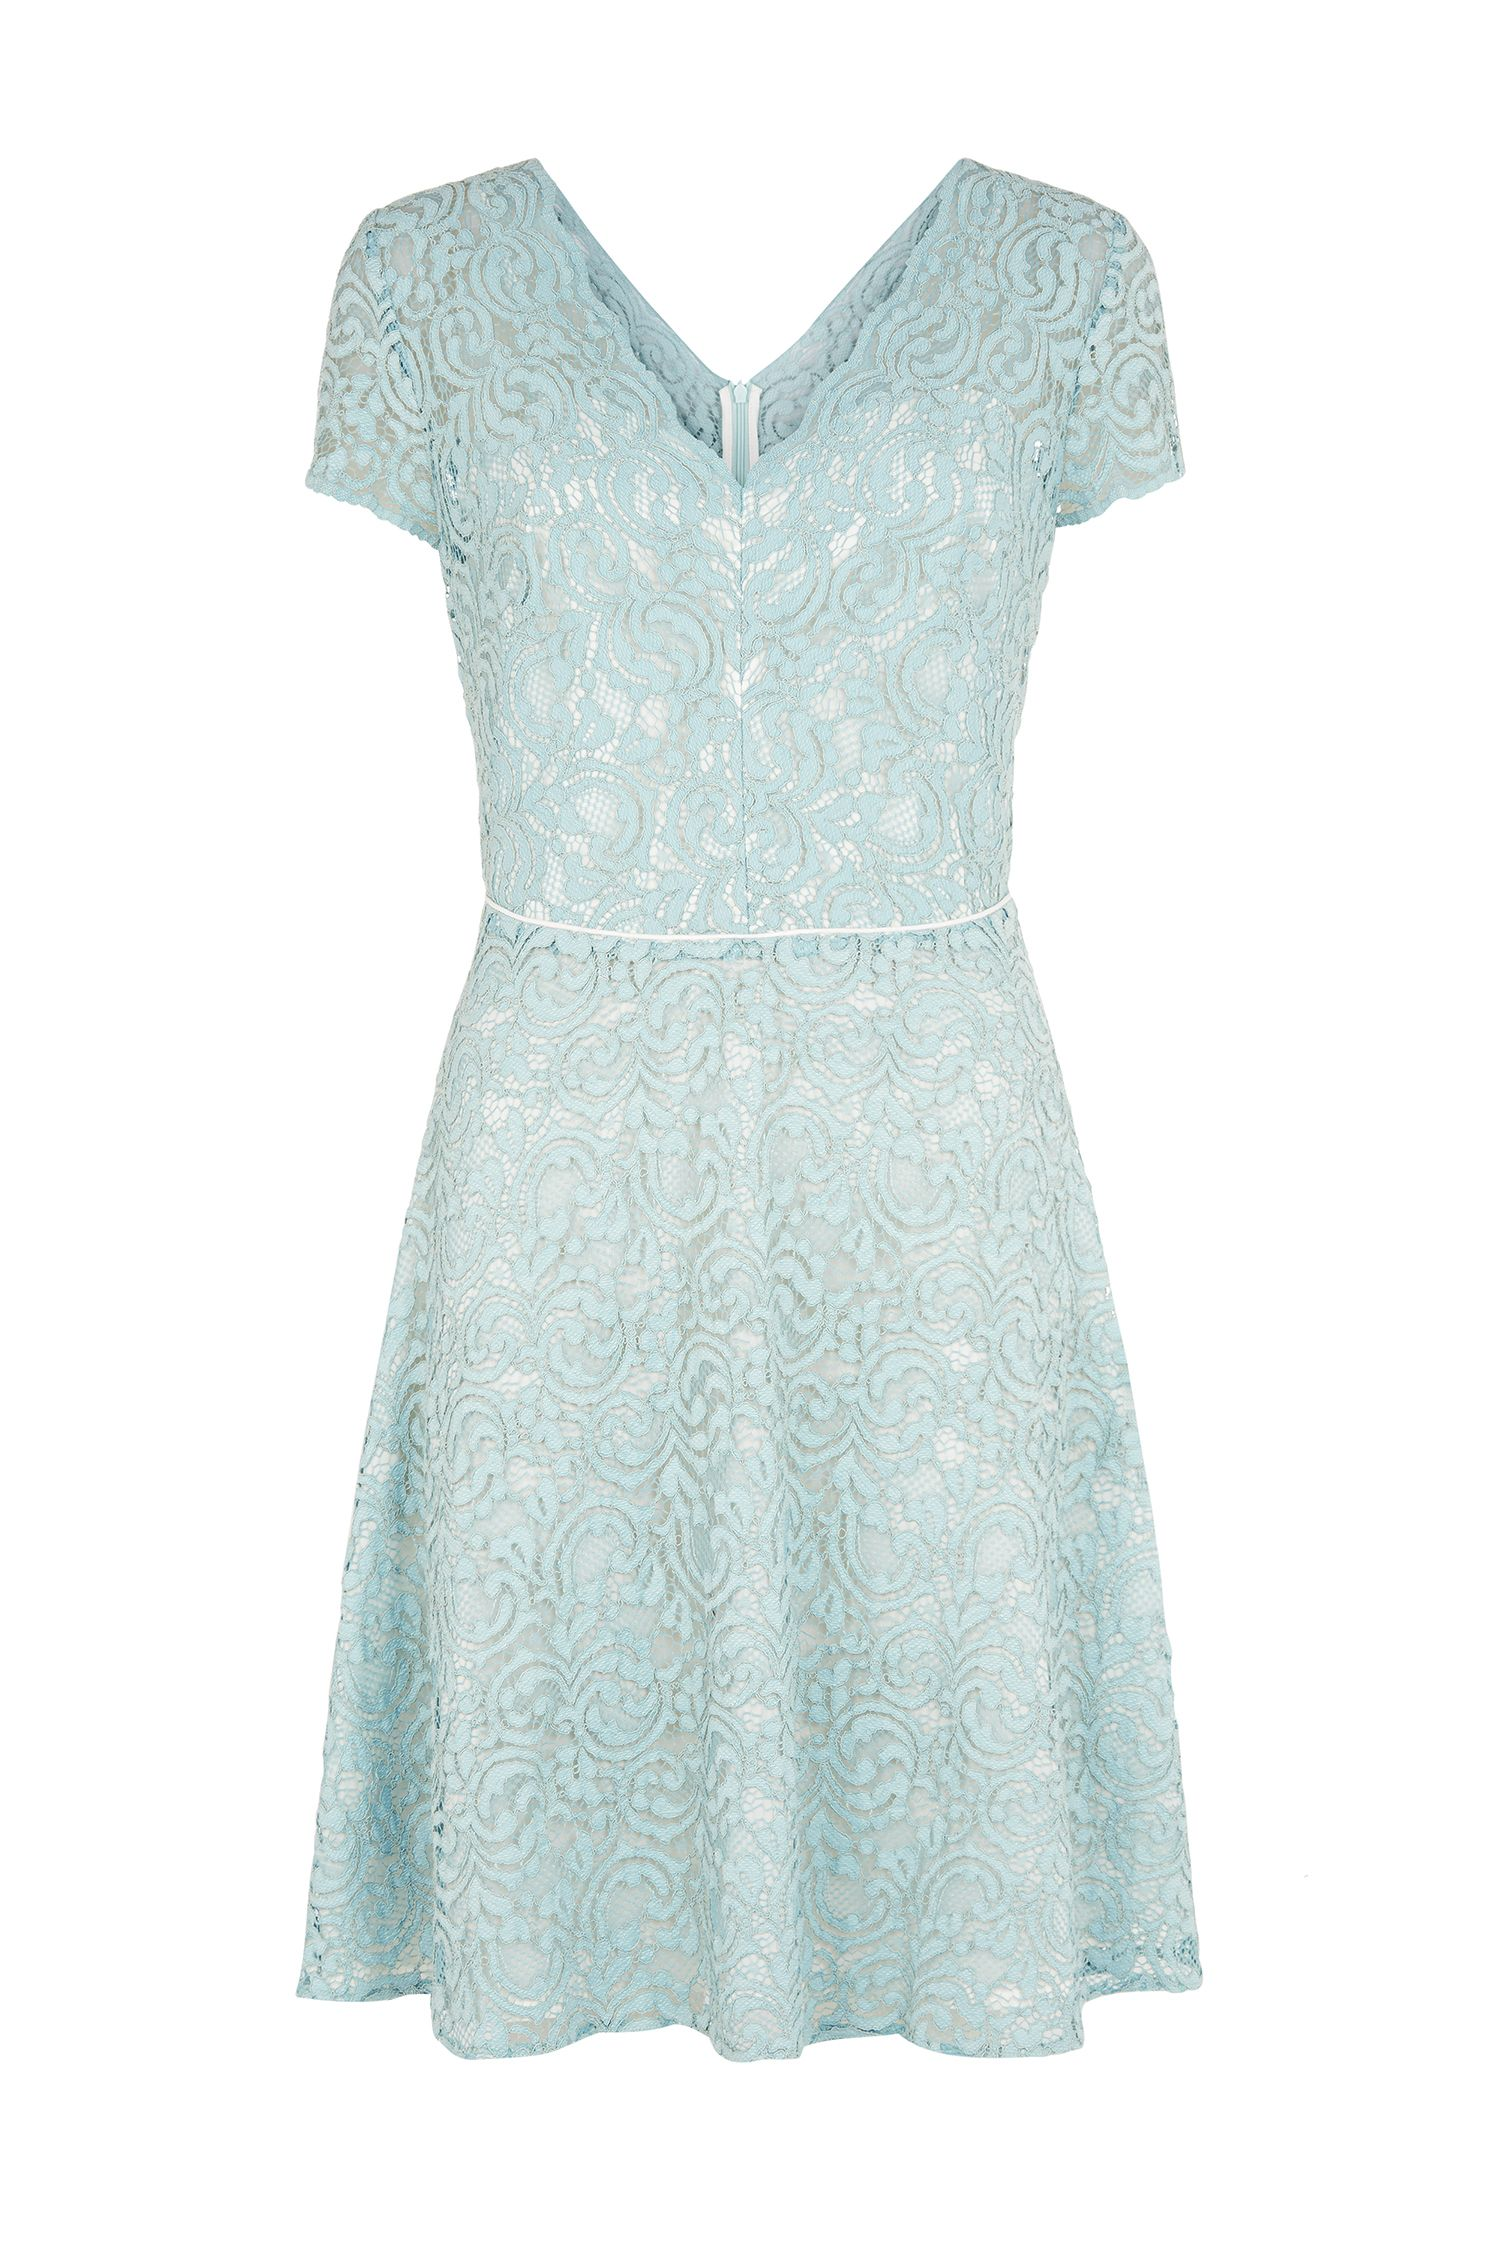 Fenn Wright Manson Gardenia Dress, Green